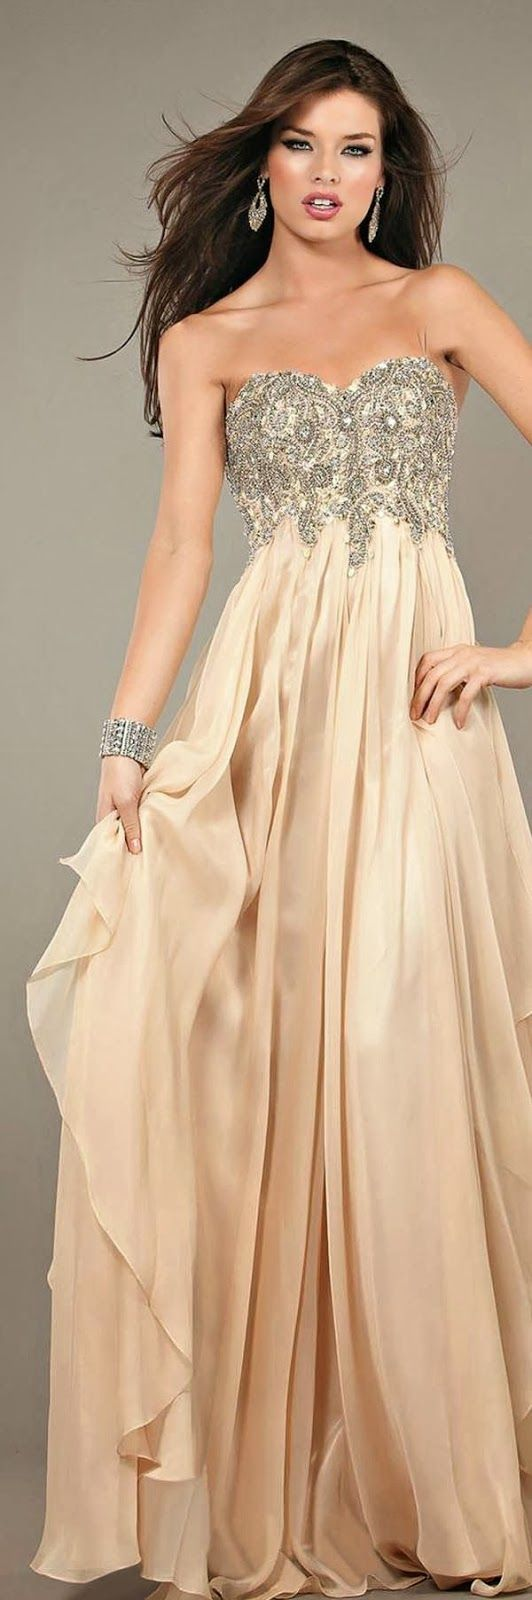 Gorgeous Party Maxi Dress. Beige/Nude Dress.  Style. Fashion.  Long Dress.